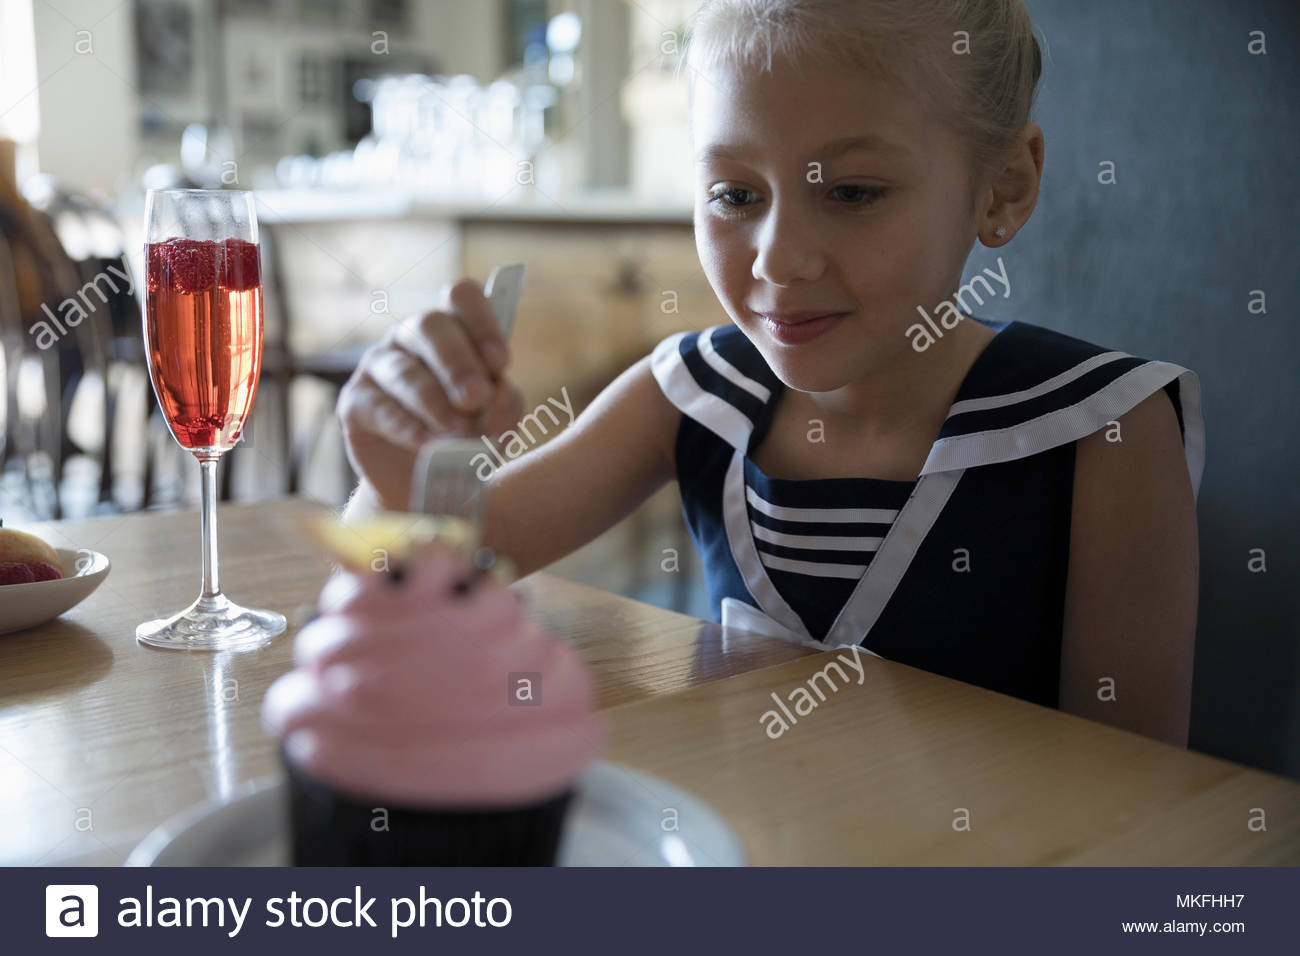 Eager girl celebrating birthday, eating cupcake in cafe - Stock Image